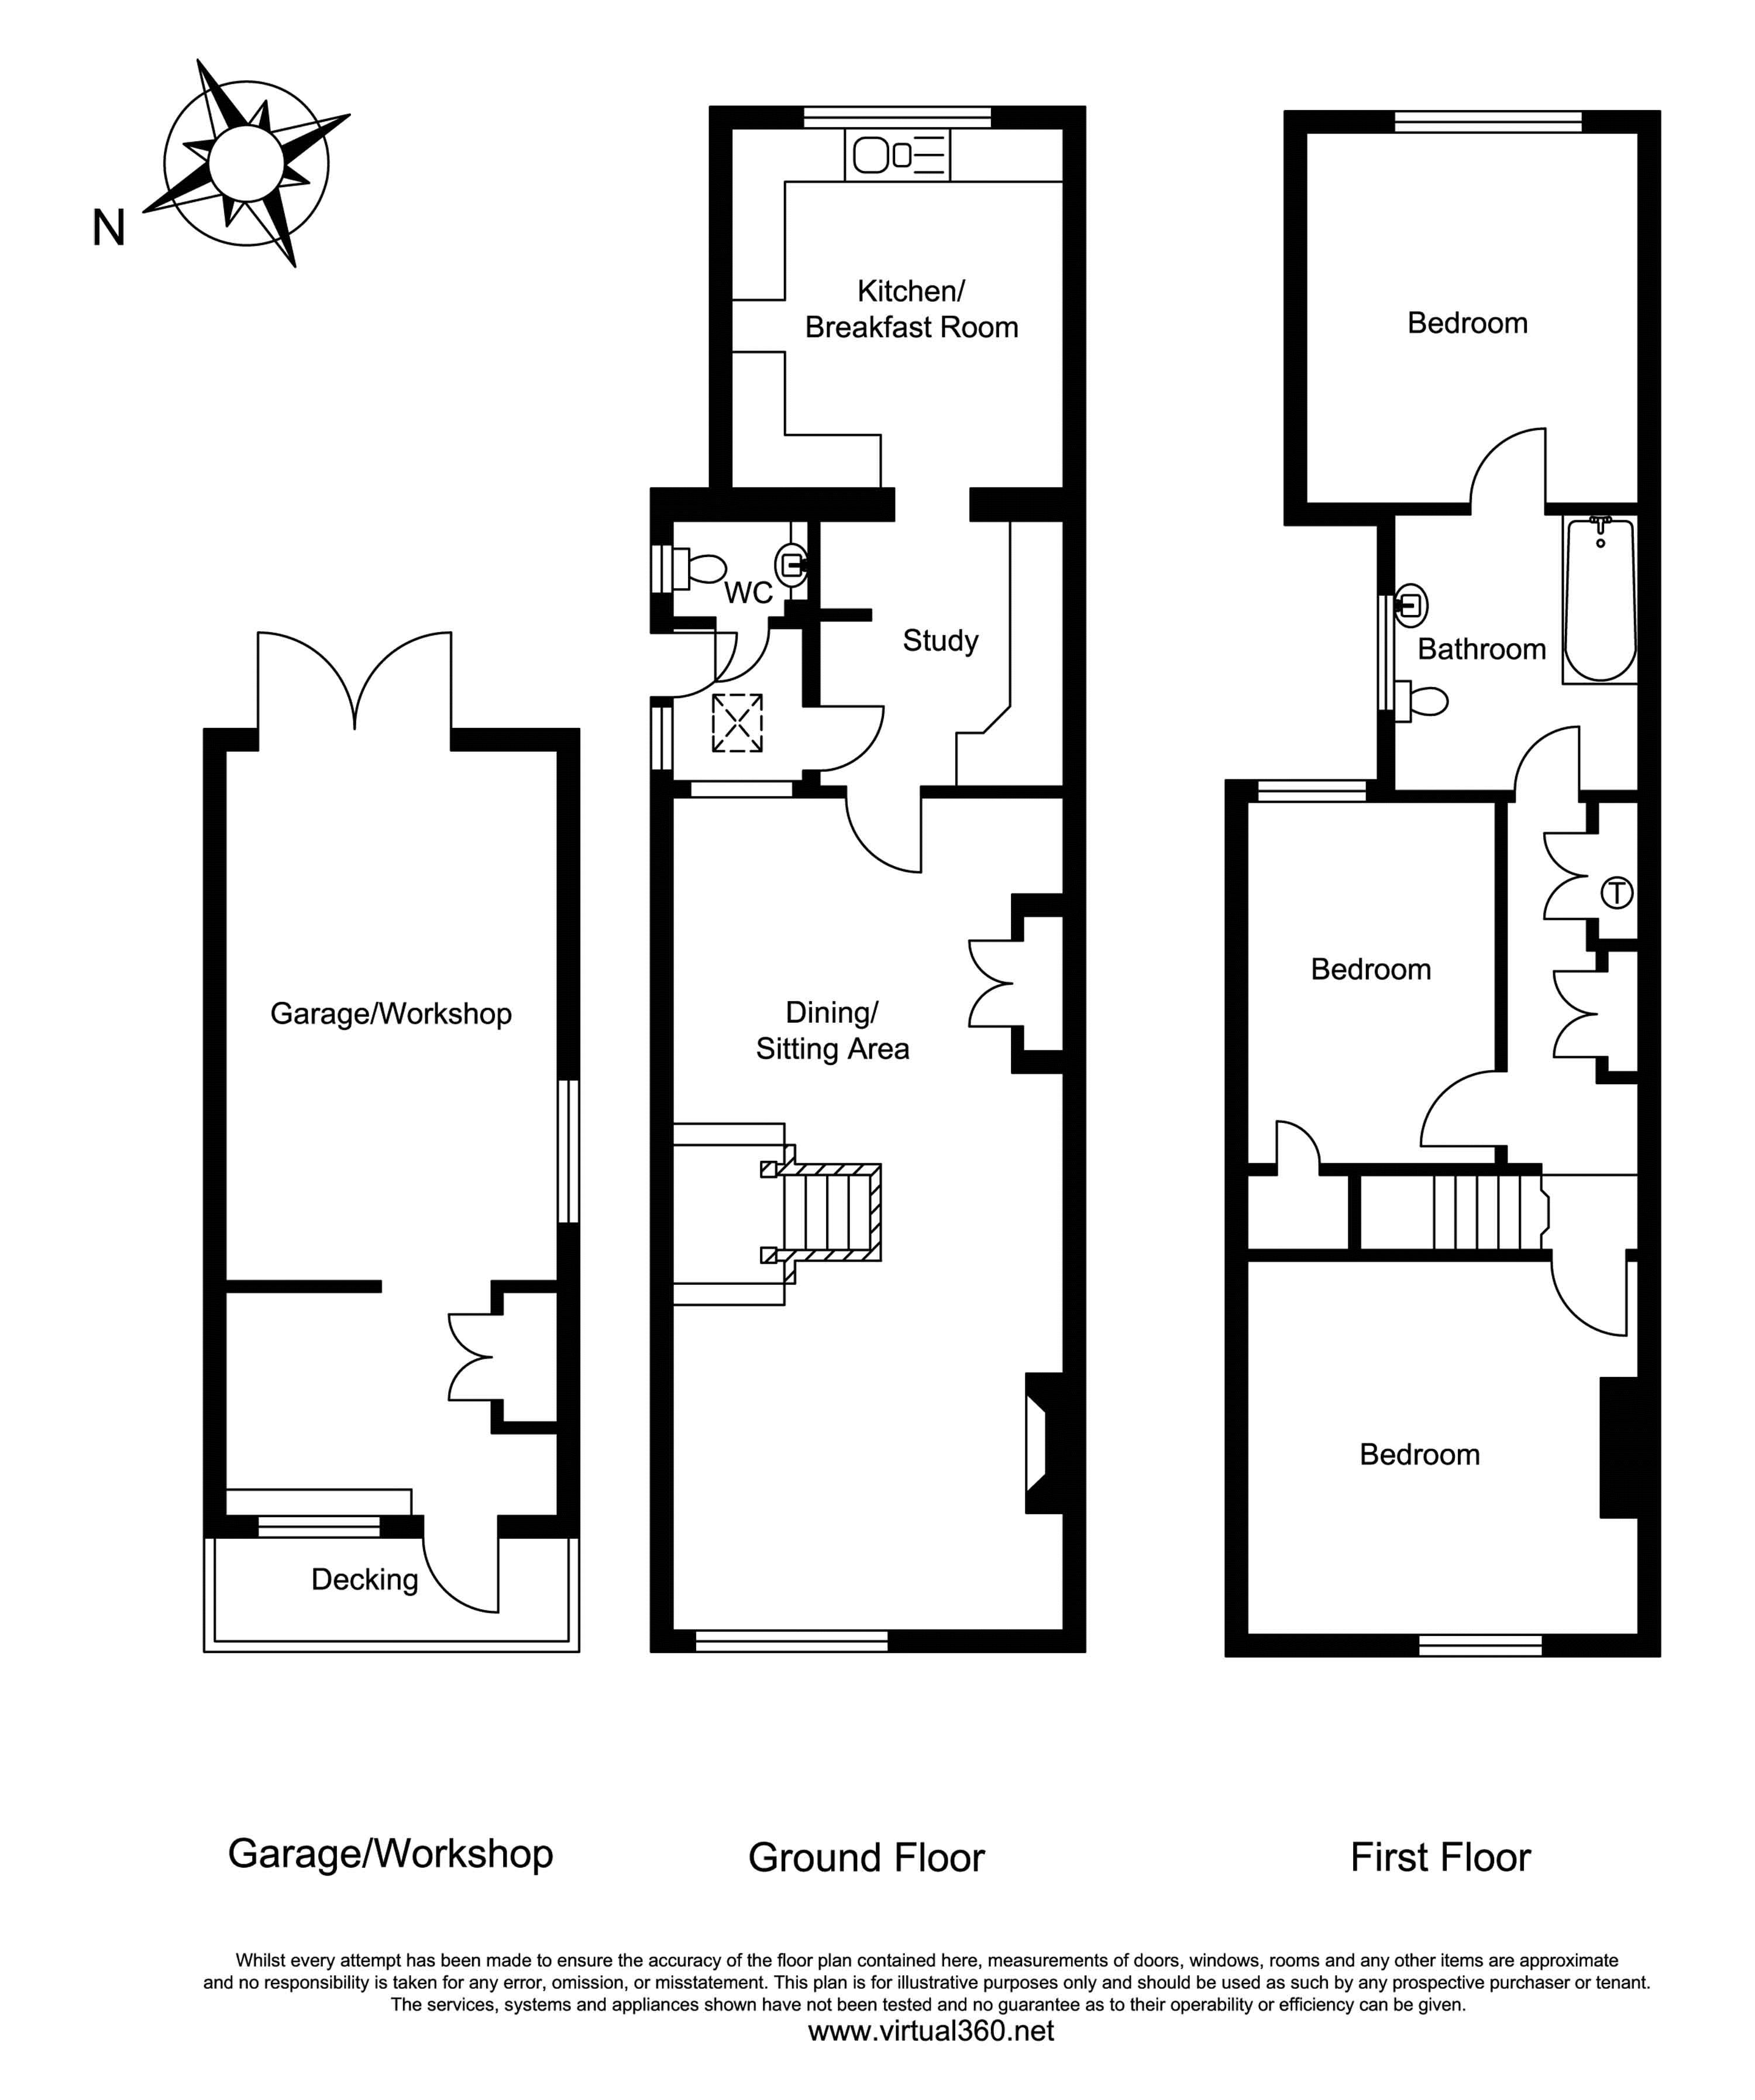 Thursley Road, Elstead, Godalming floor plan